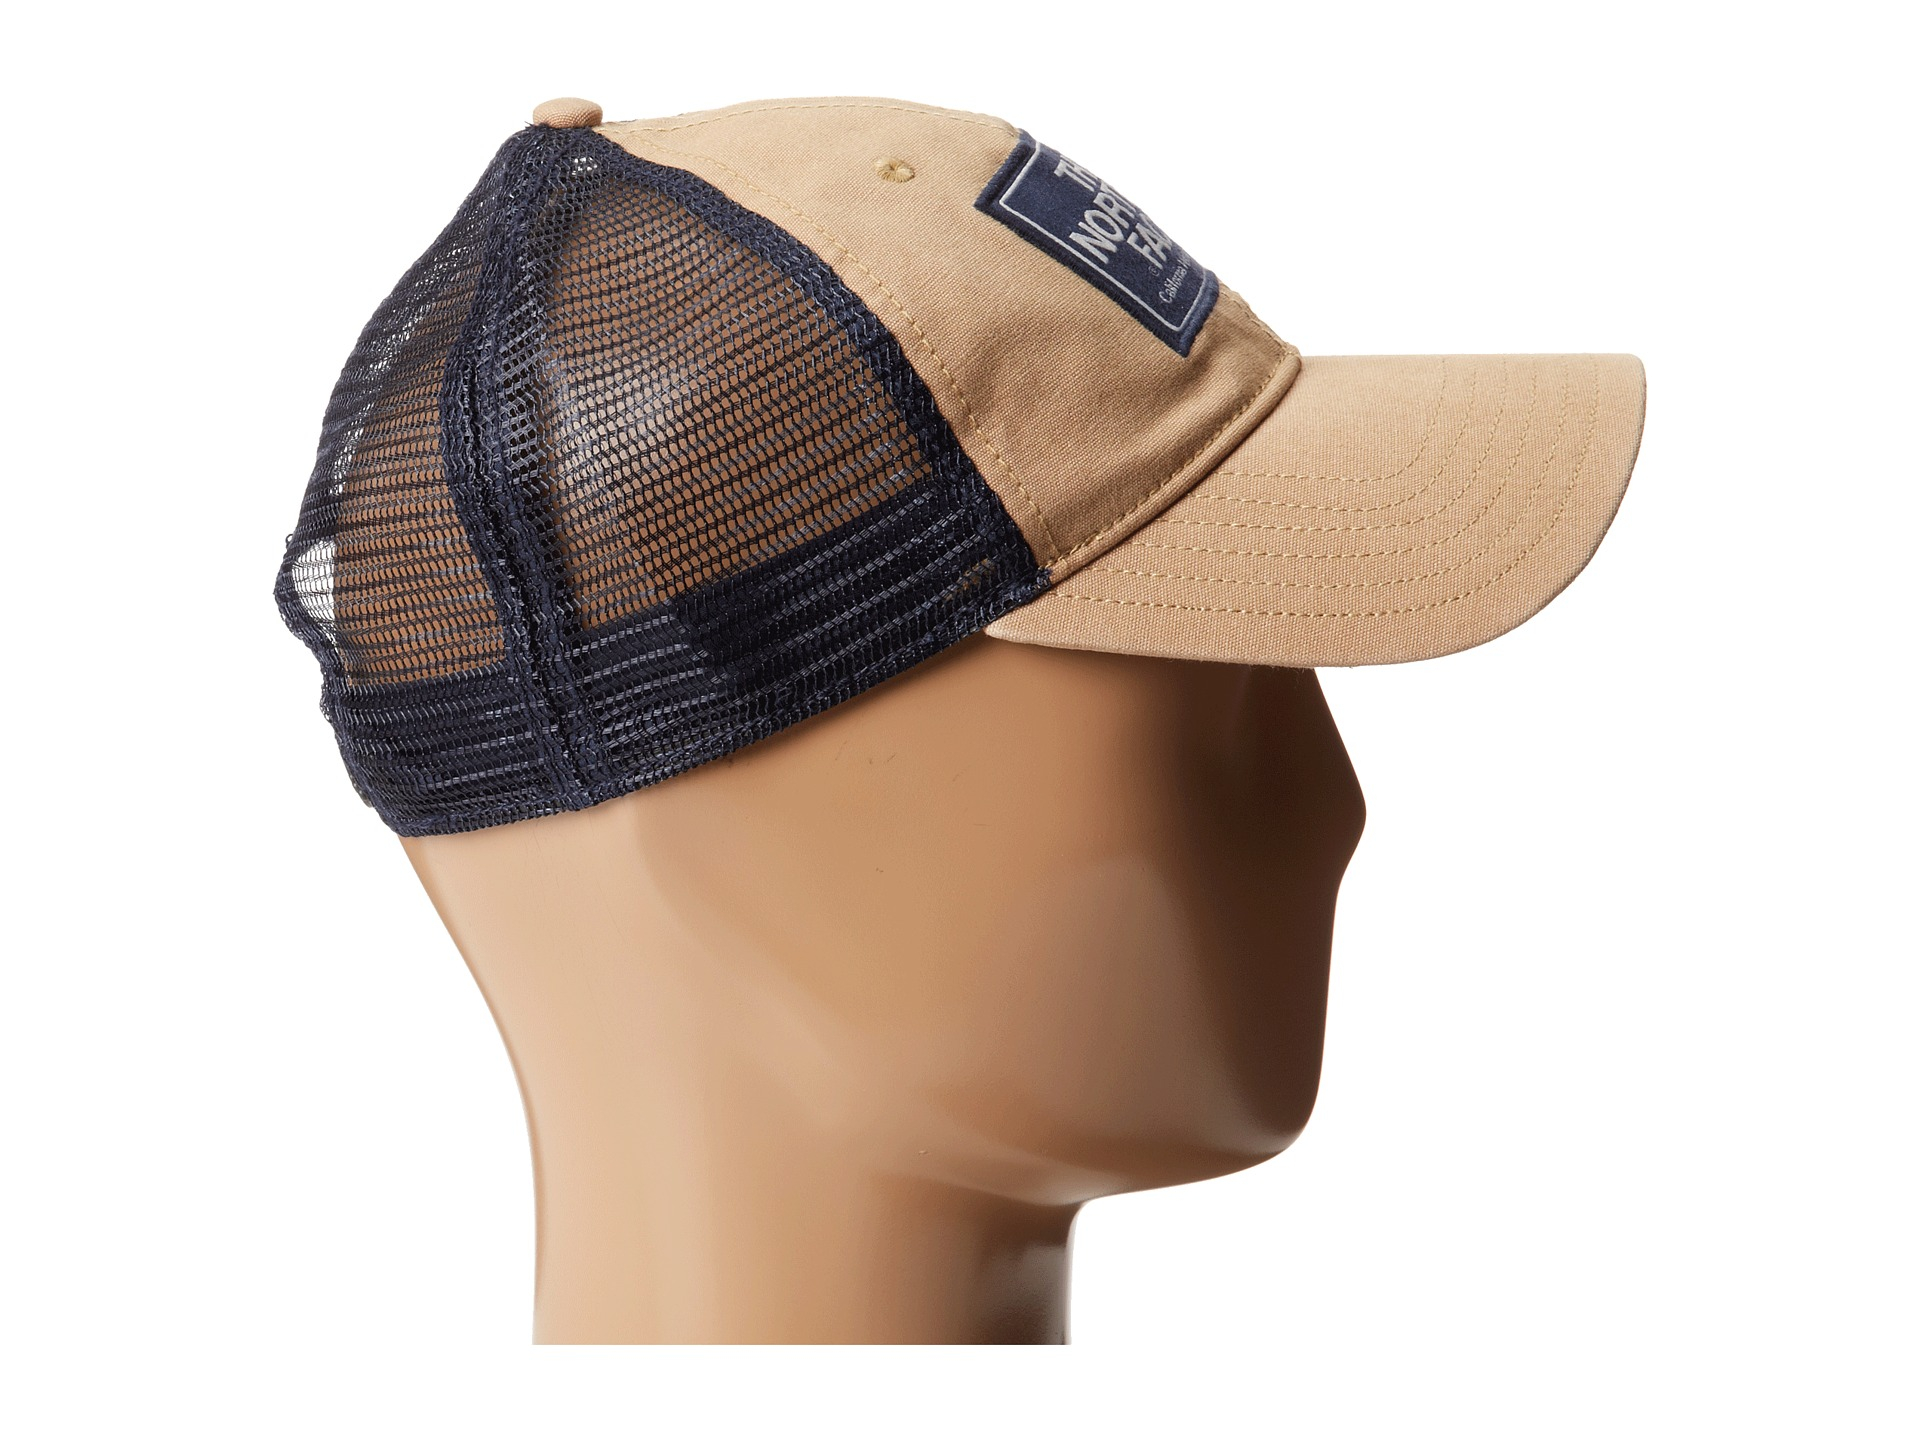 Lyst - The North Face Mudder Trucker Hat in Natural 9e2083132301